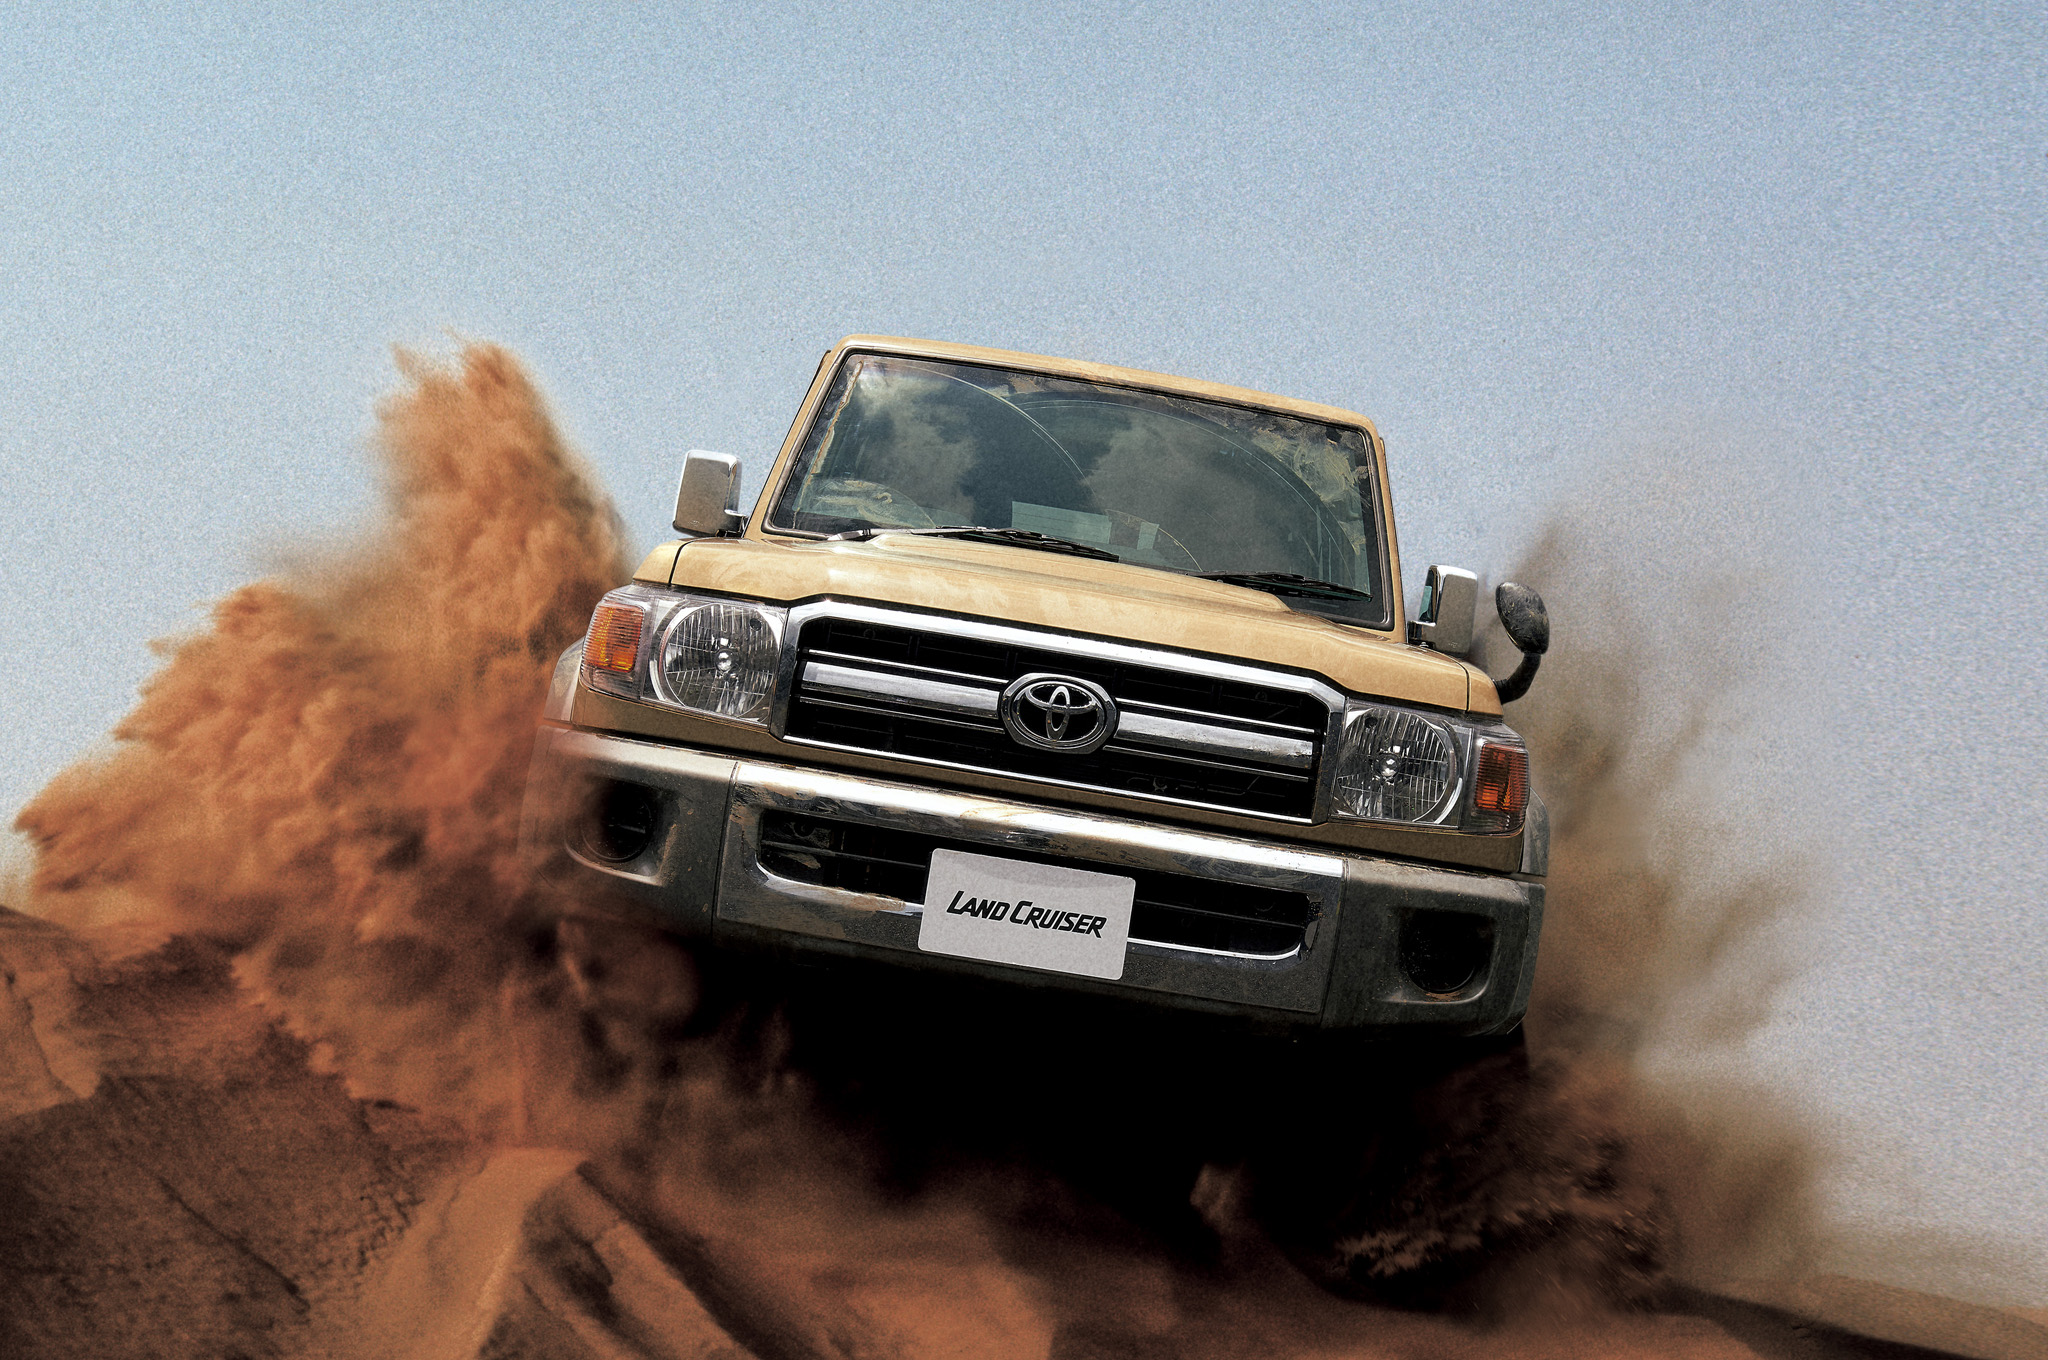 Toyota Land Cruiser 70 Series Returns in Japan for 30th Anniversary